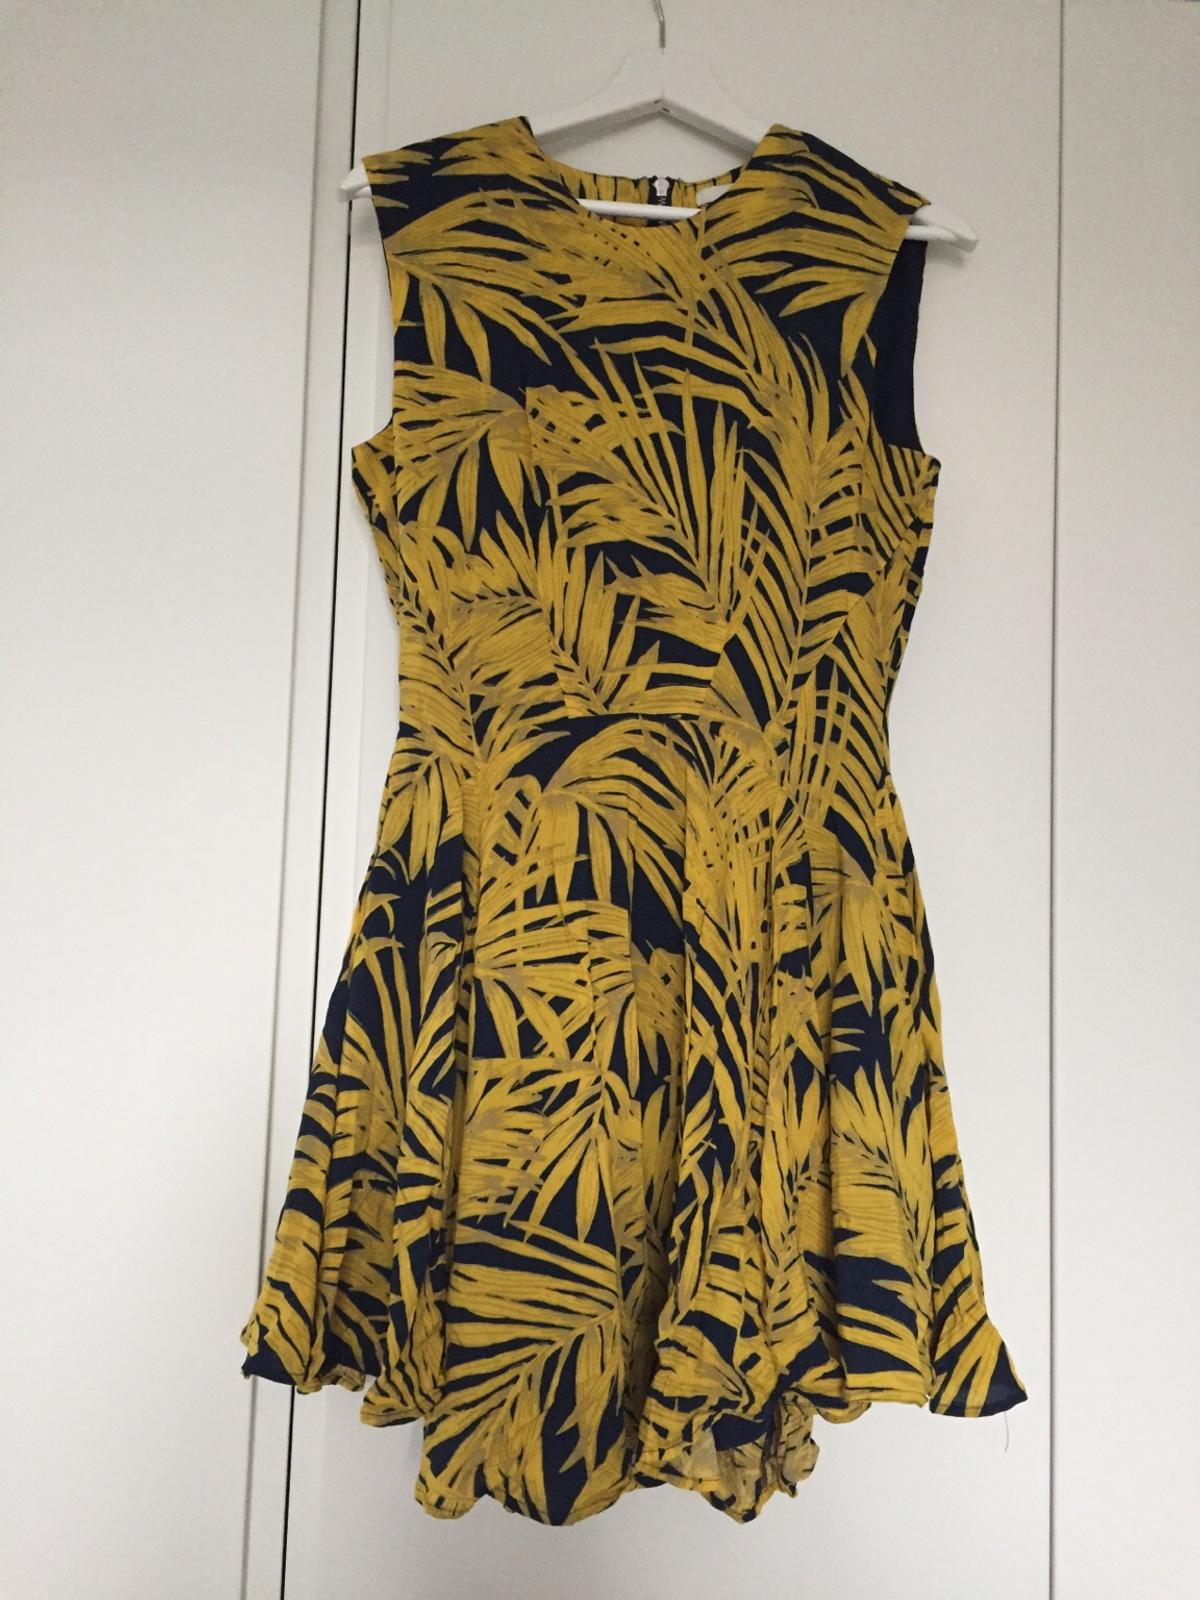 9e1724f80b2f H M ladies skater dress size 10 in London for £4.00 for sale - Shpock